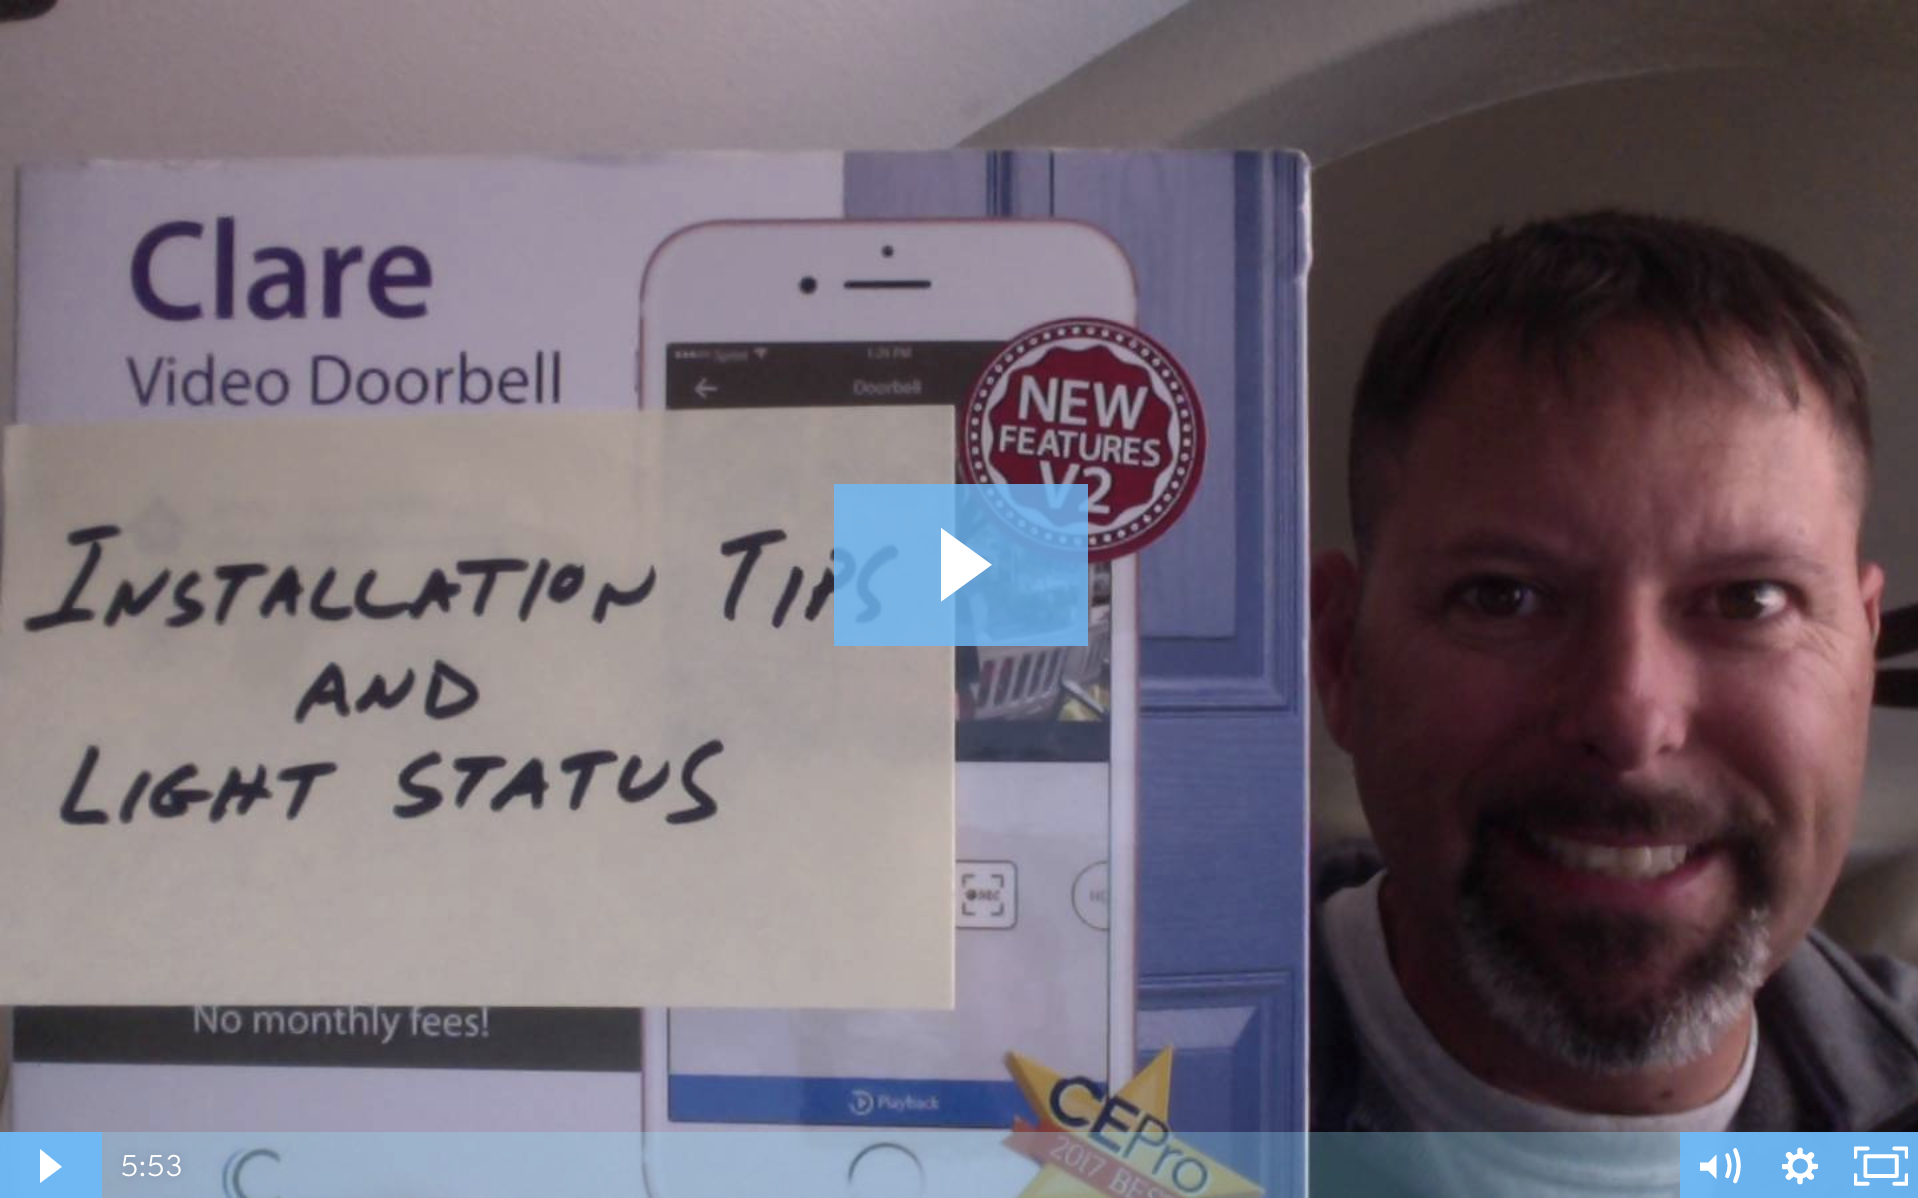 Clare Tech Tuesday: Clare Video Doorbell Installation Tips & Light Status